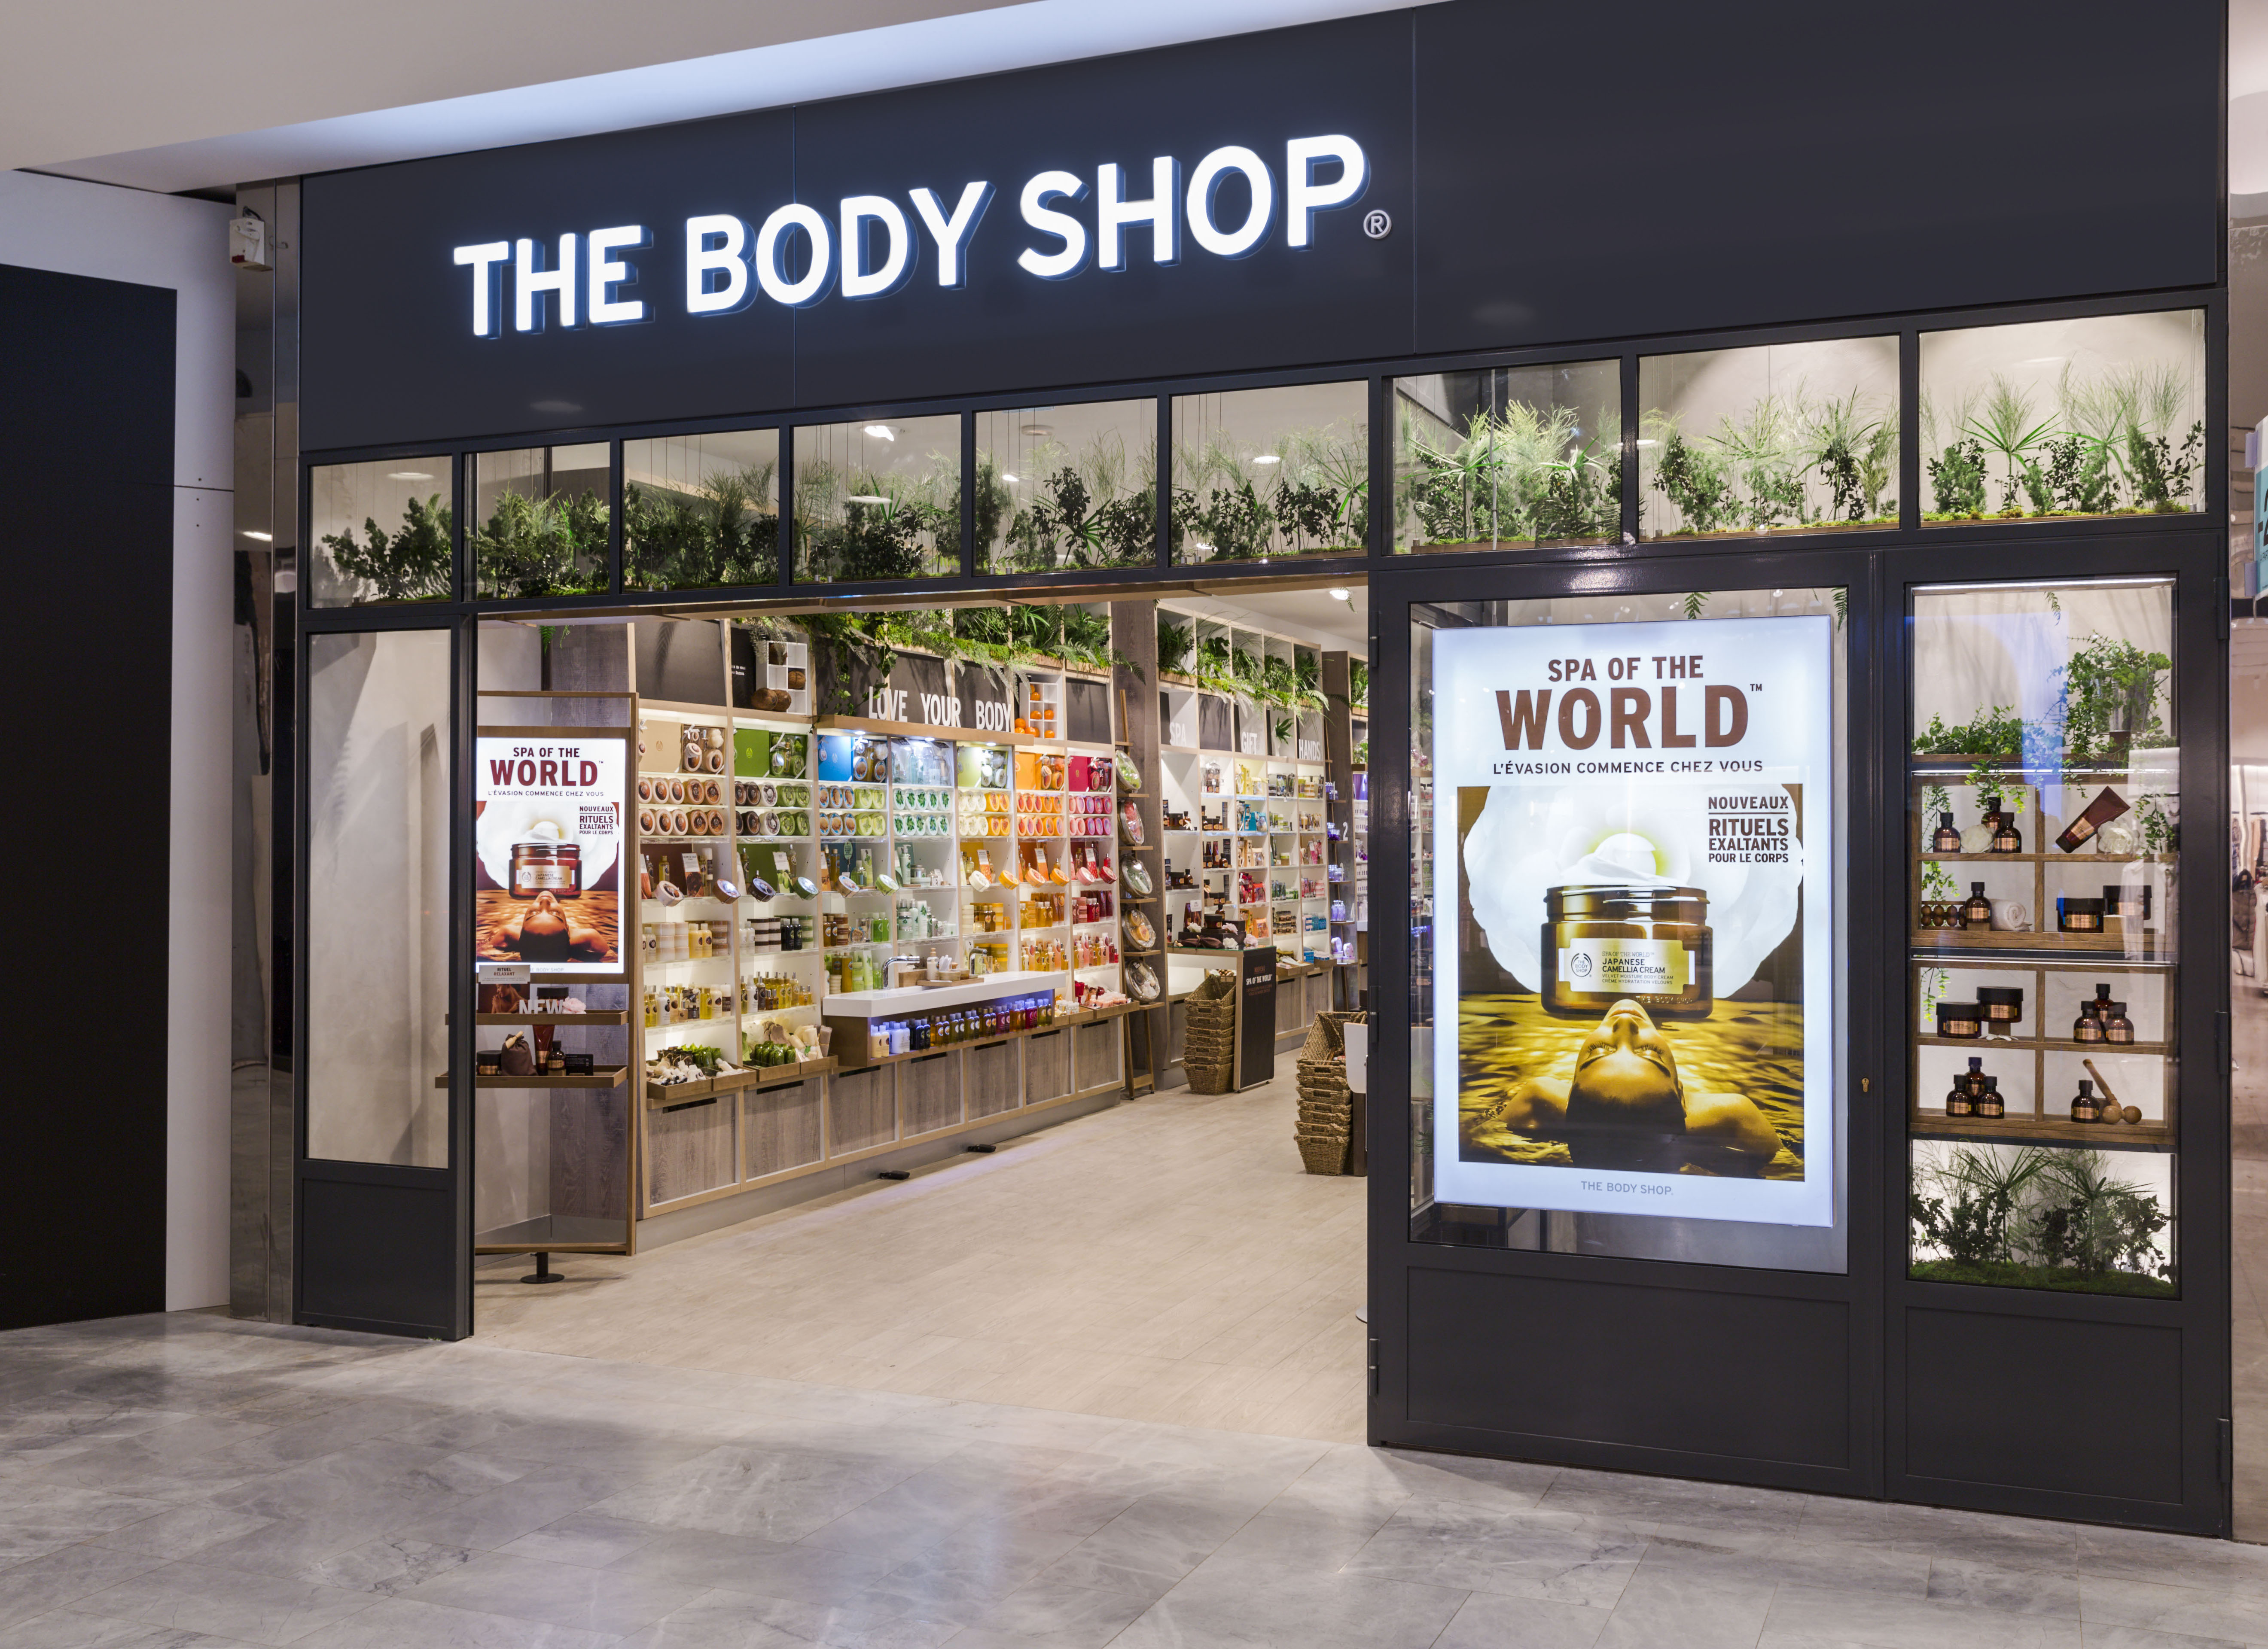 Shop The Body Shop at ULTA. Find body butters, creams & skin care products that are innovative, naturally-inspired. Includes Tea Tree, Vitamin E, Aloe & Coconut.